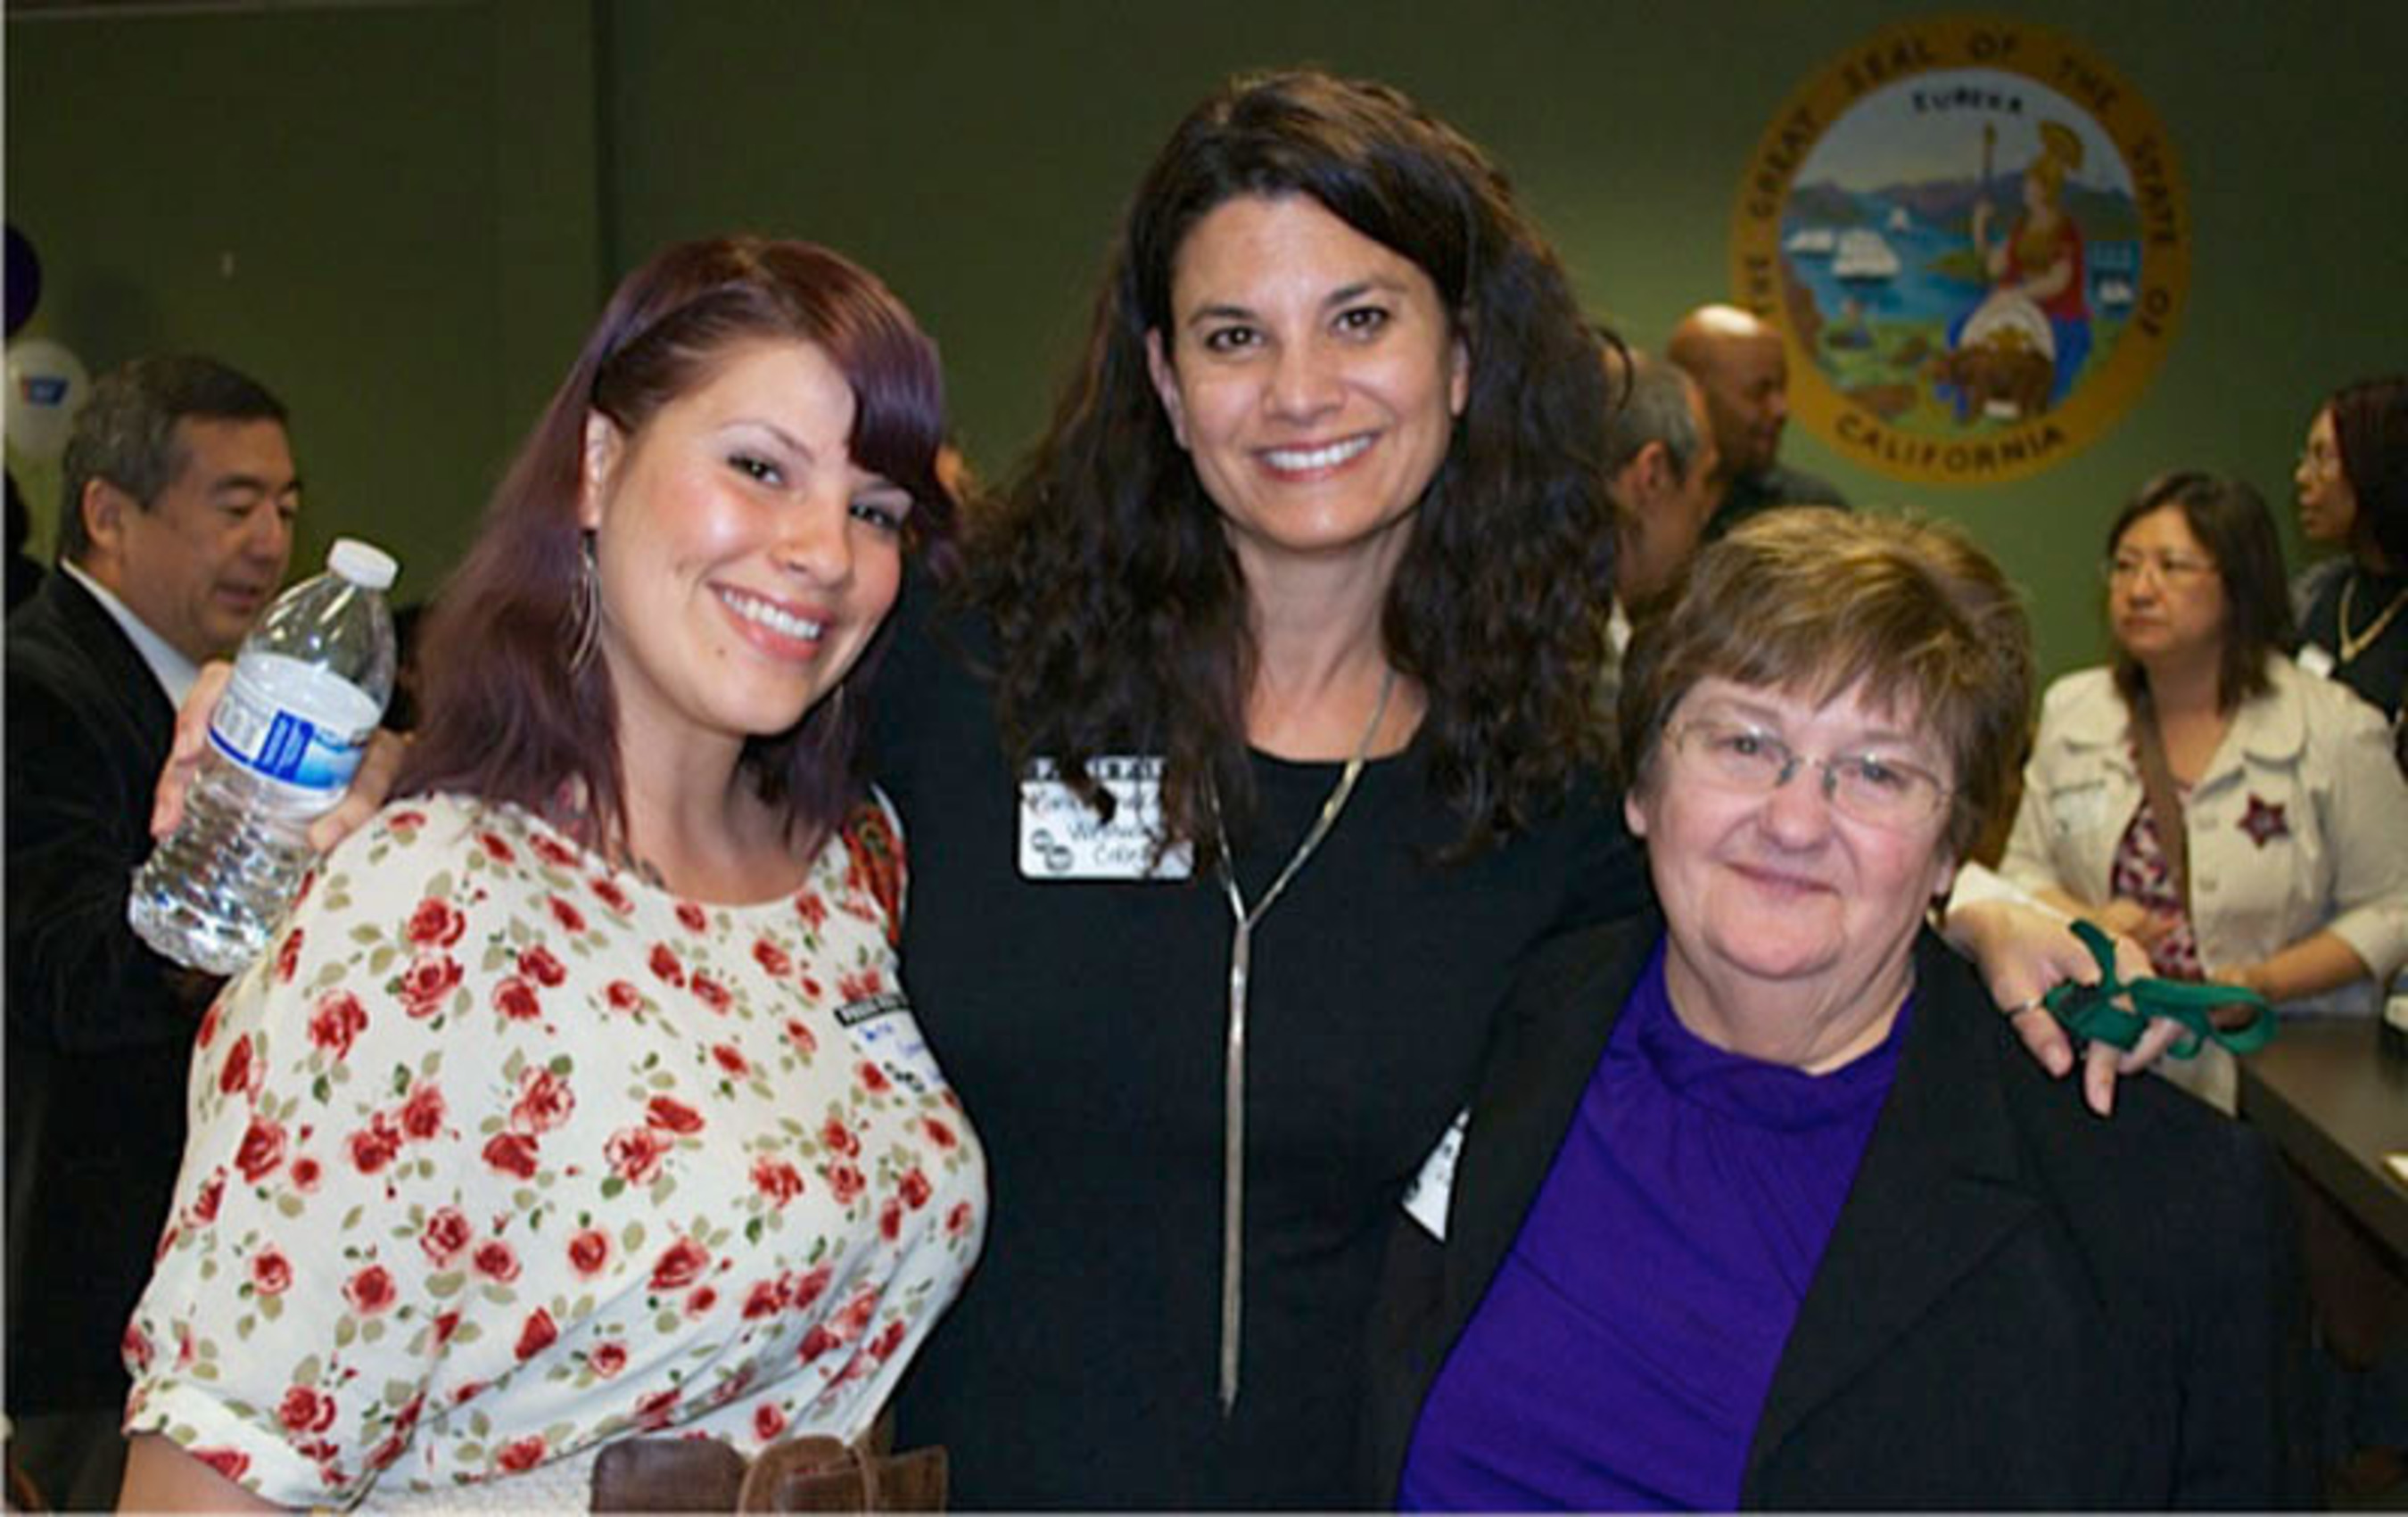 Upcoming Westwood College graduate Teena Gunnoe; Monica Shakin, Director of Career Services for Westwood College; and Joanne Valle, Executive Director for the Harbor City/Harbor Gateway Chamber of Commerce.  (PRNewsFoto/Westwood College)